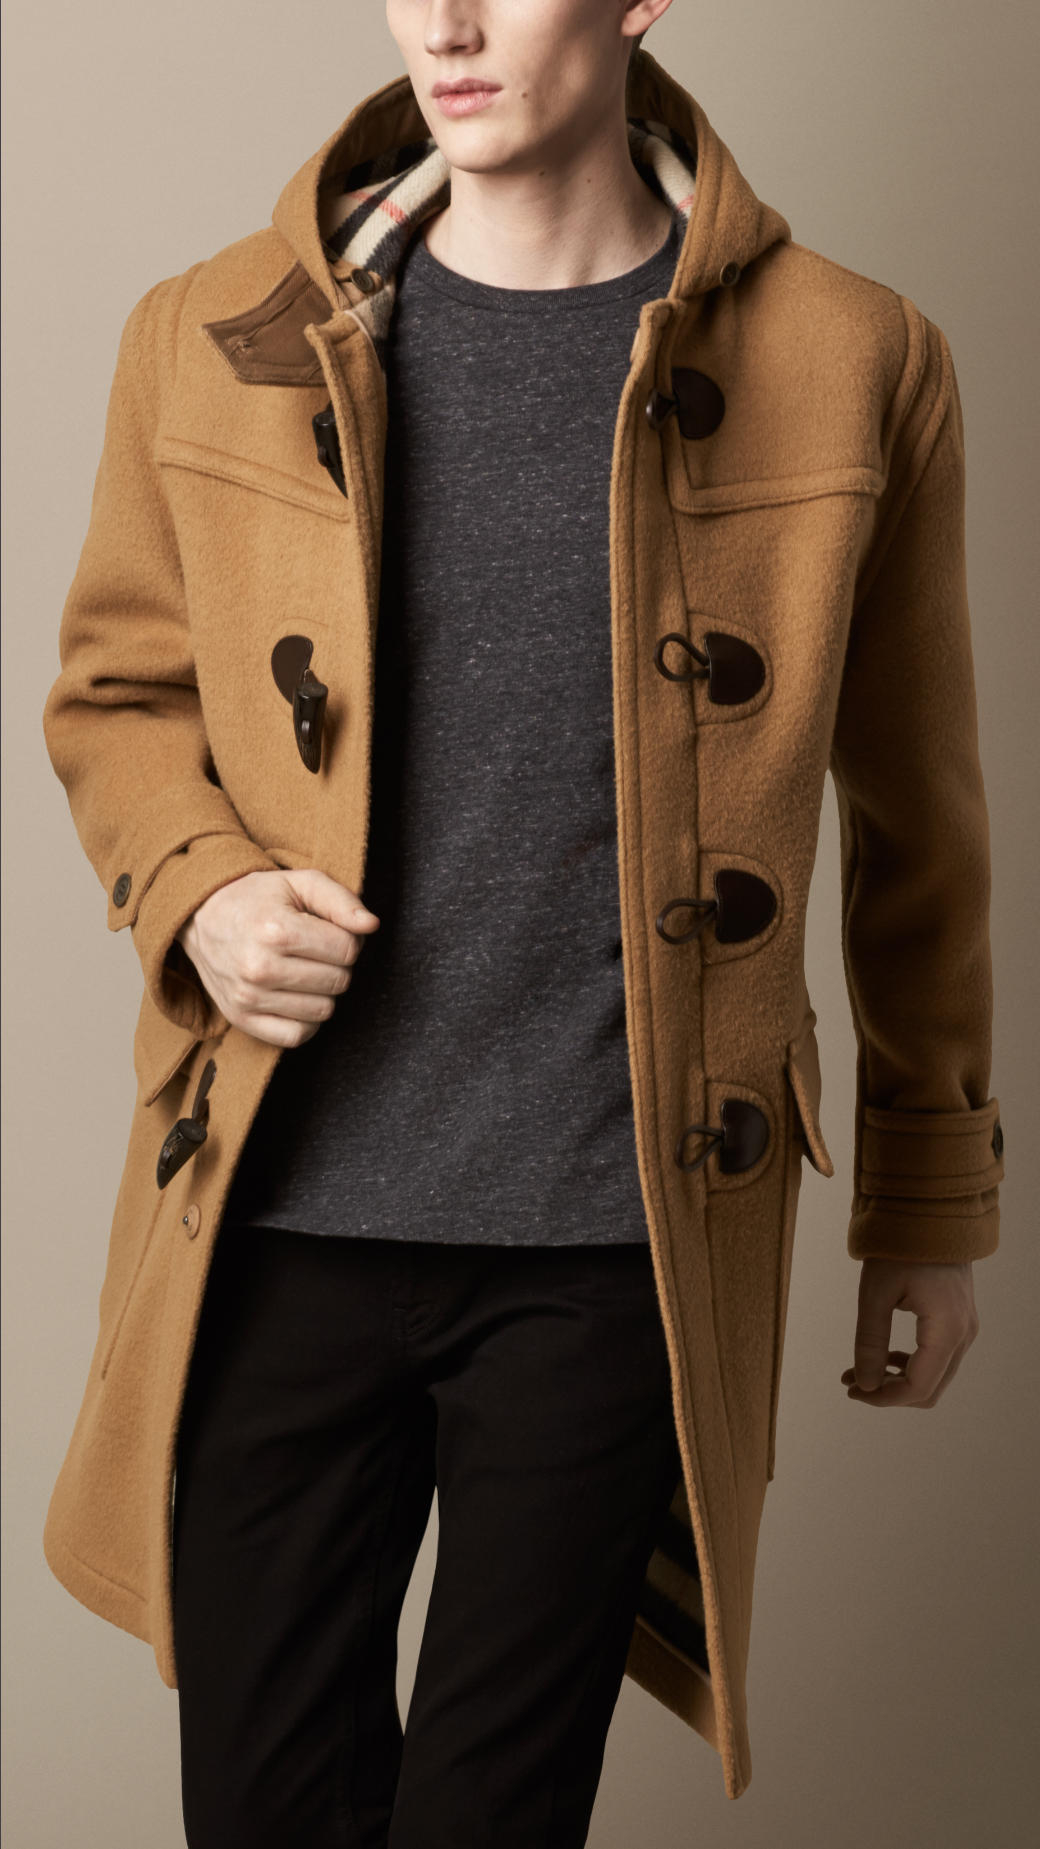 burberry oversize wool duffle coat in natural for men lyst. Black Bedroom Furniture Sets. Home Design Ideas